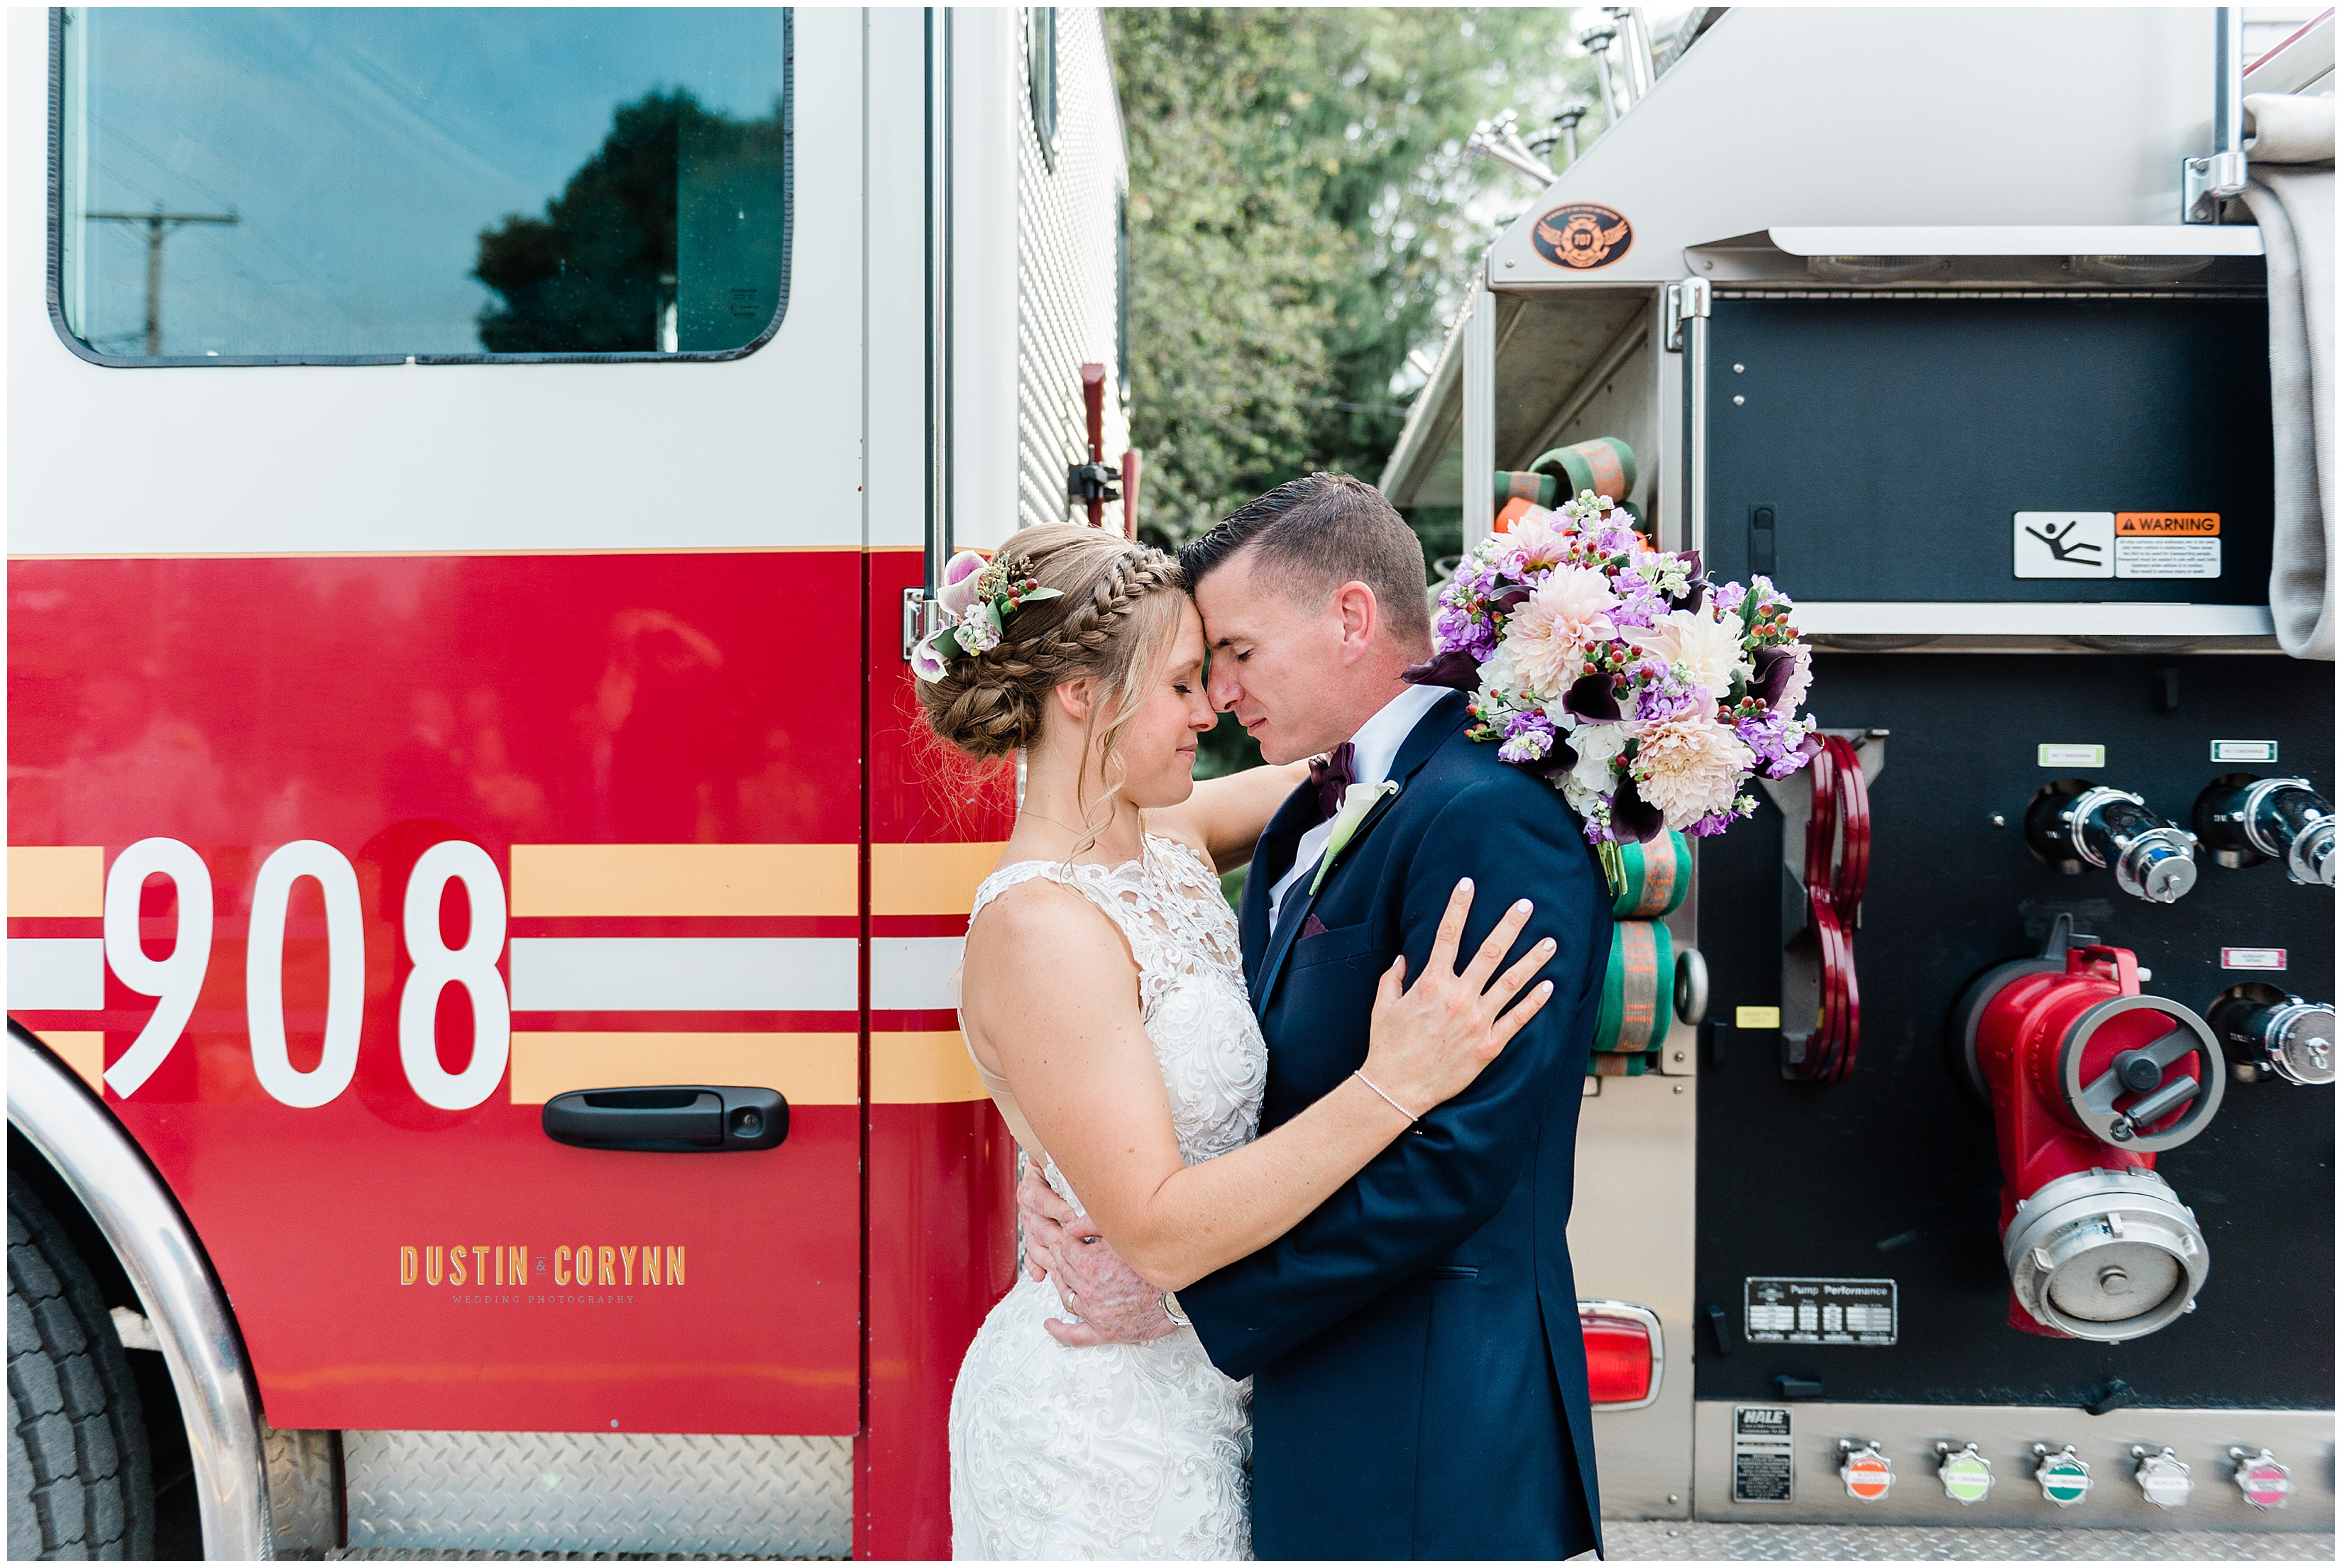 Portraits with Firetruck